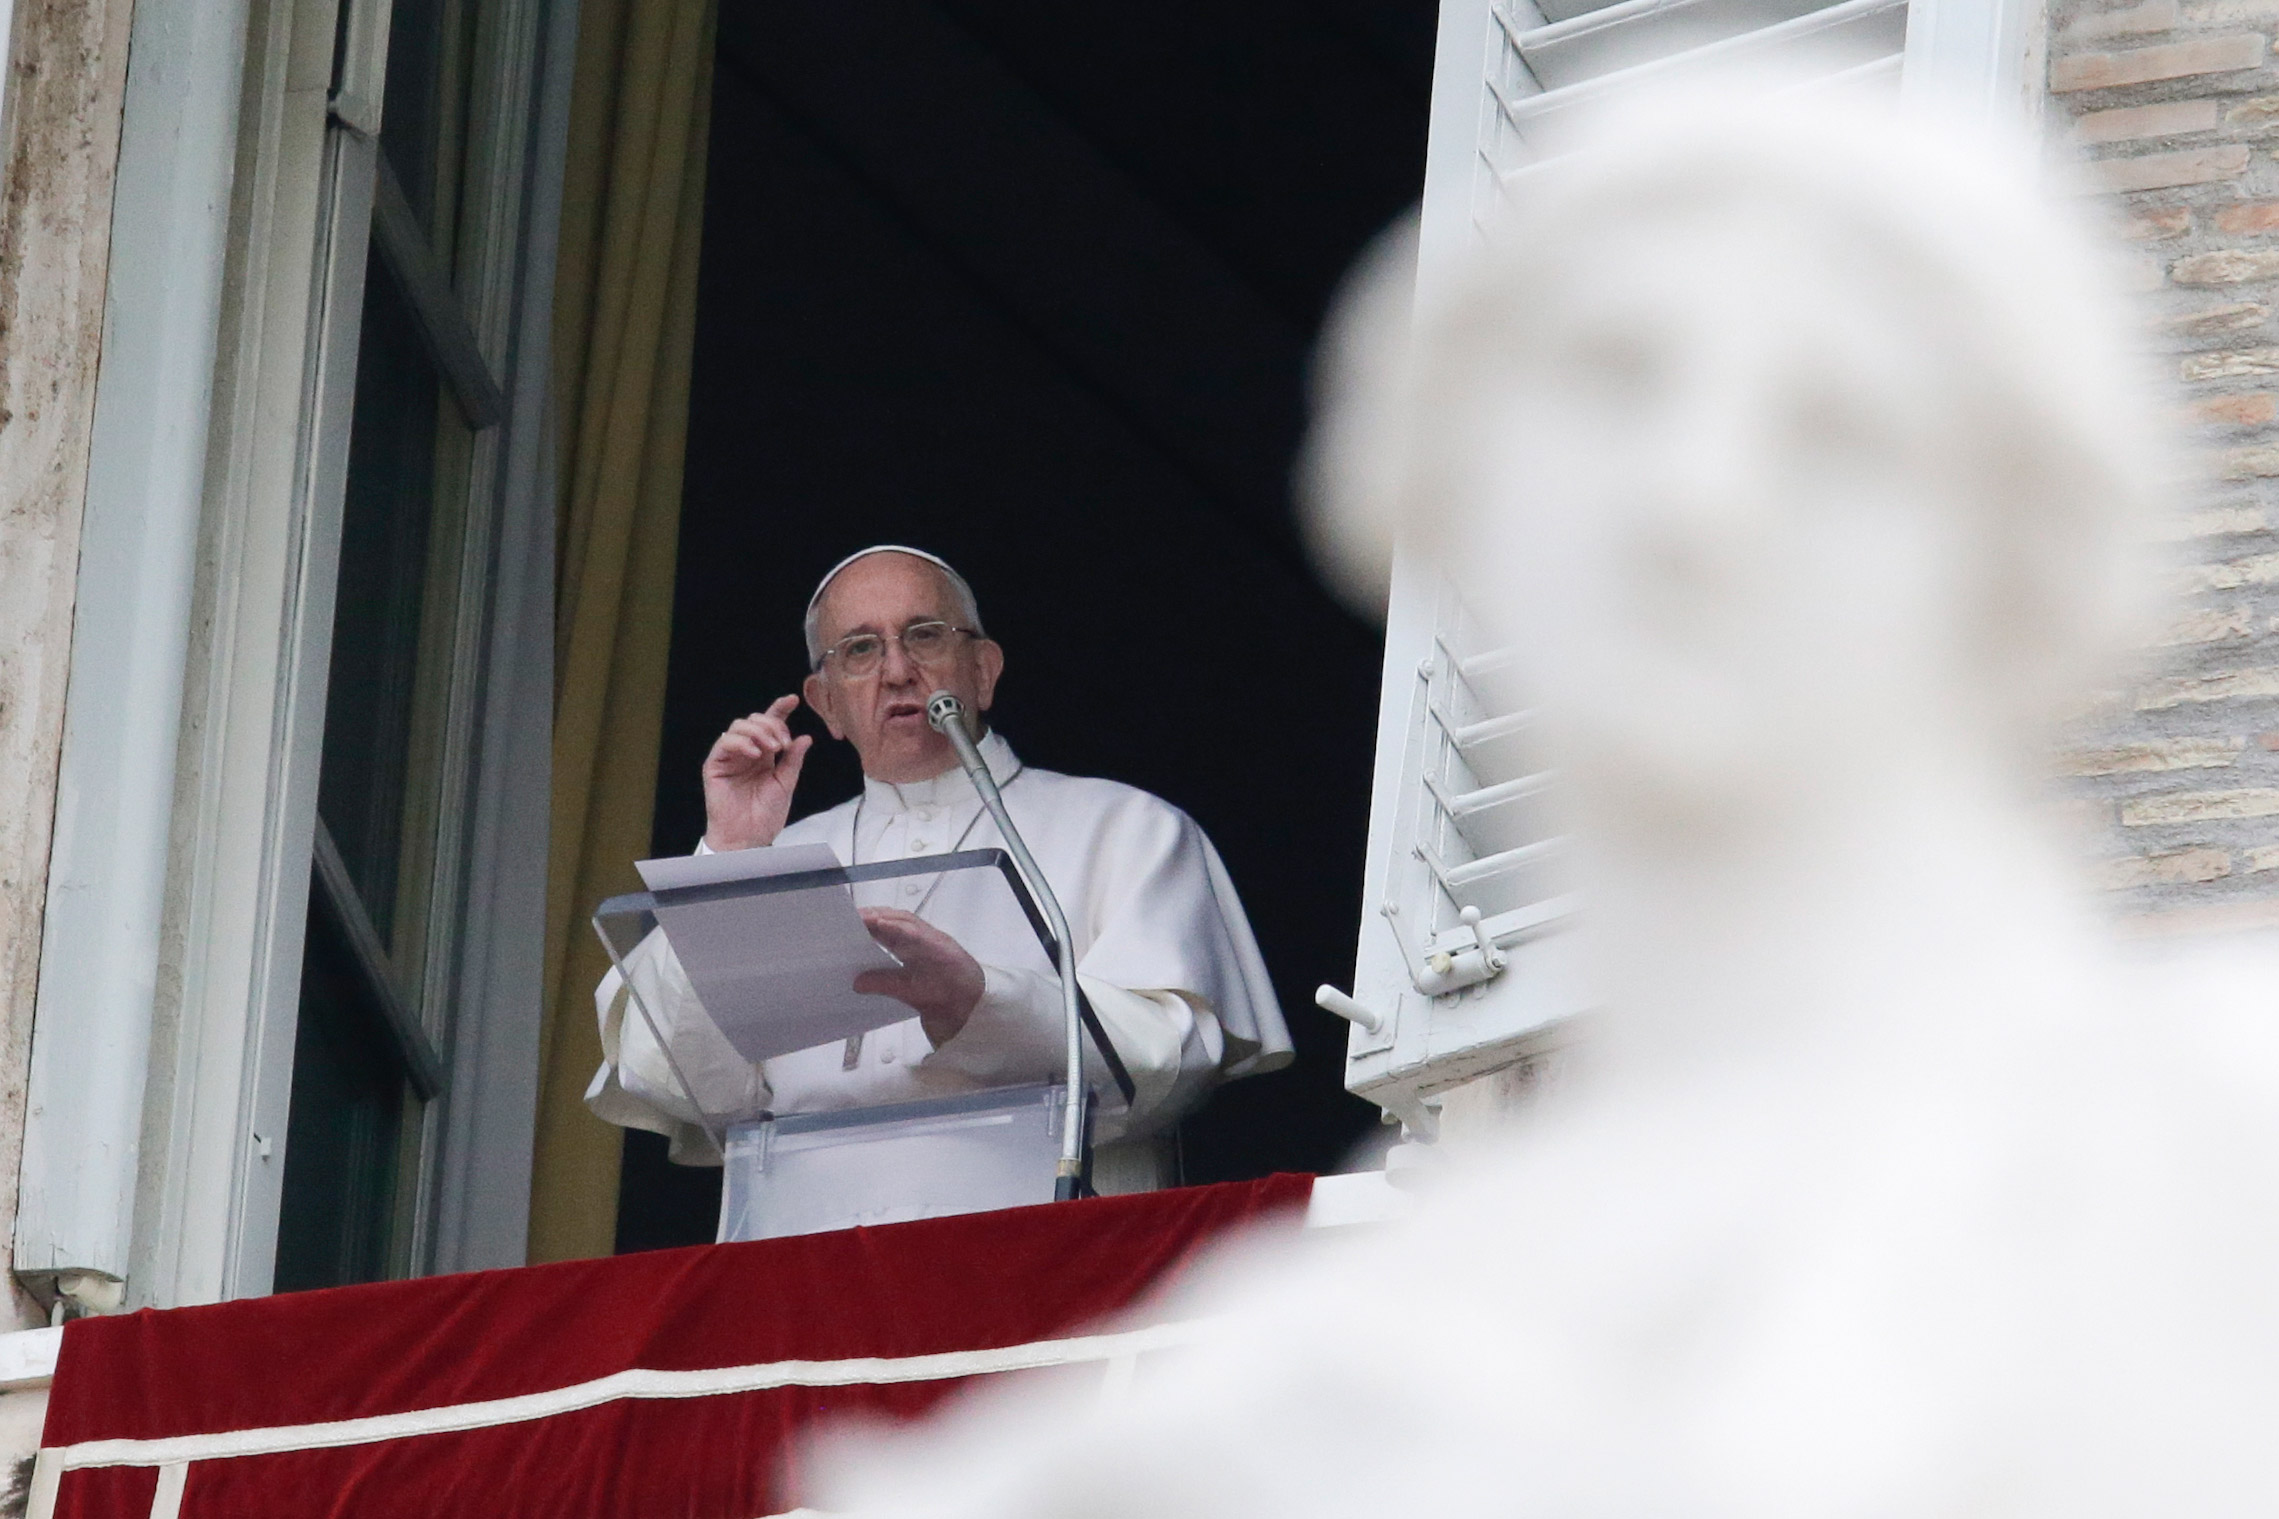 Pope Francis delivers the Regina Coeli prayer from his studio's window overlooking St. Peter's Square at the Vatican on Mar. 28, 2016.